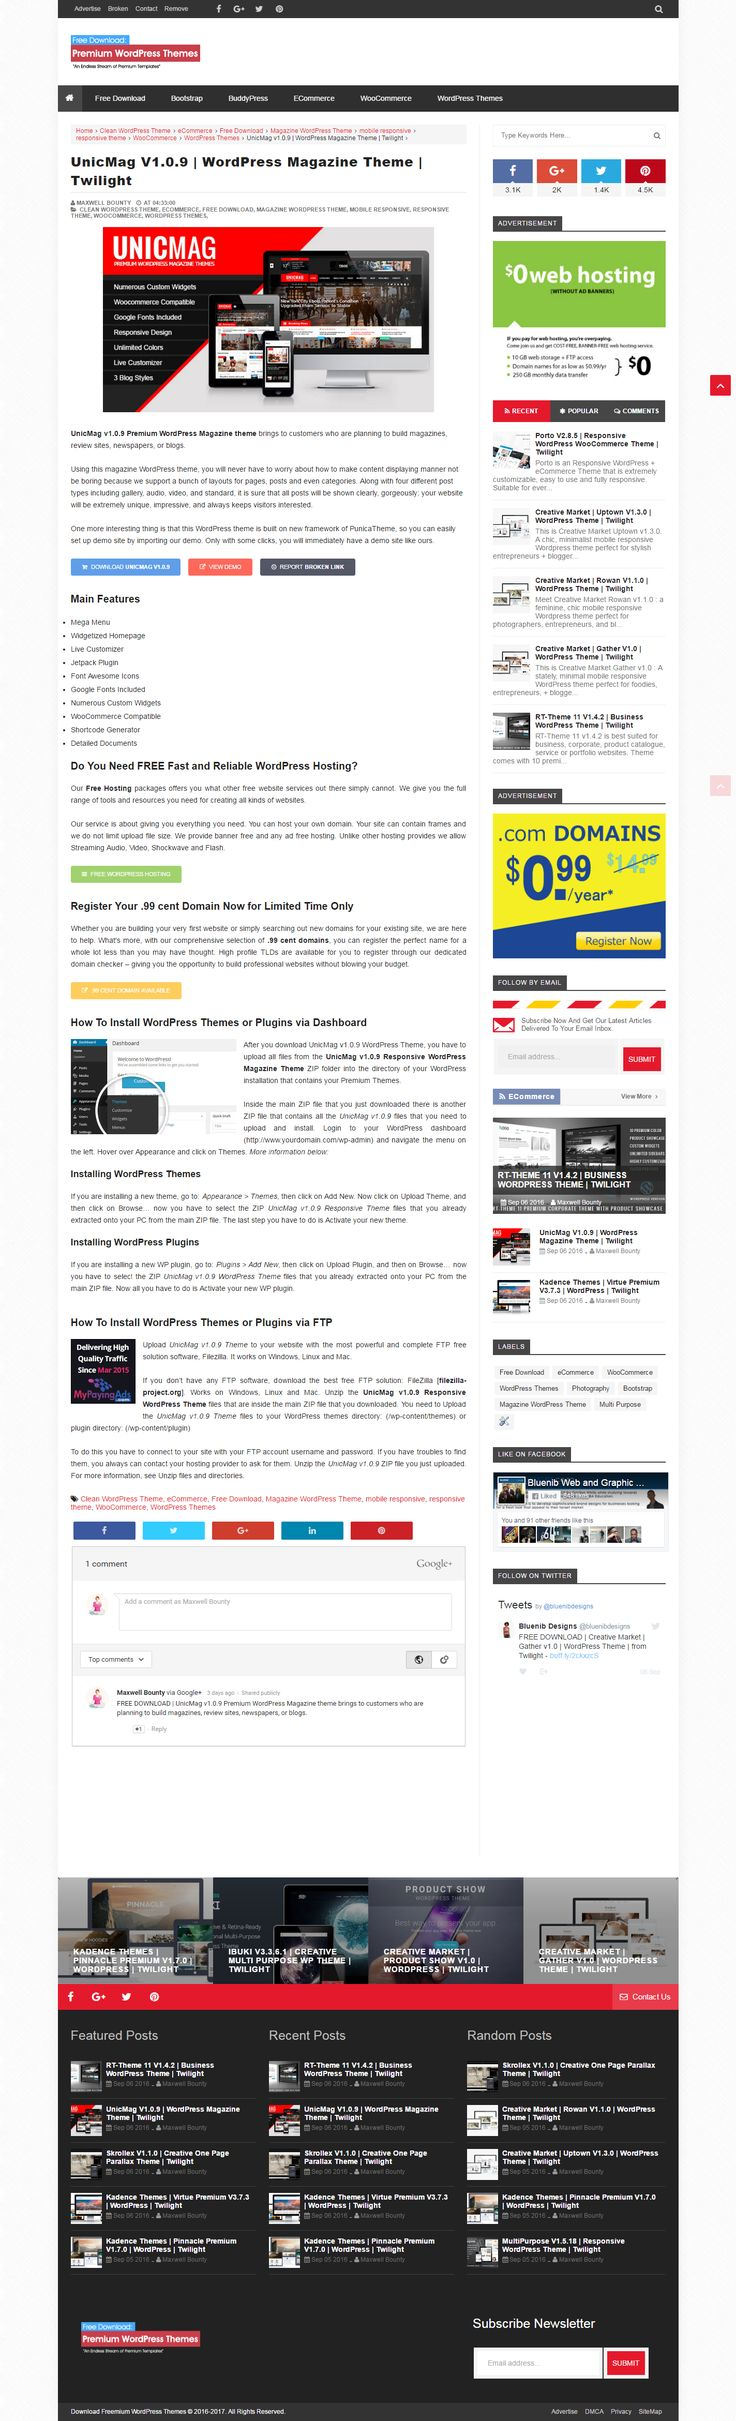 Themes for gmail account free download - Free Download Unicmag V1 0 9 Premium Wordpress Magazine Theme Brings To Customers Who Are